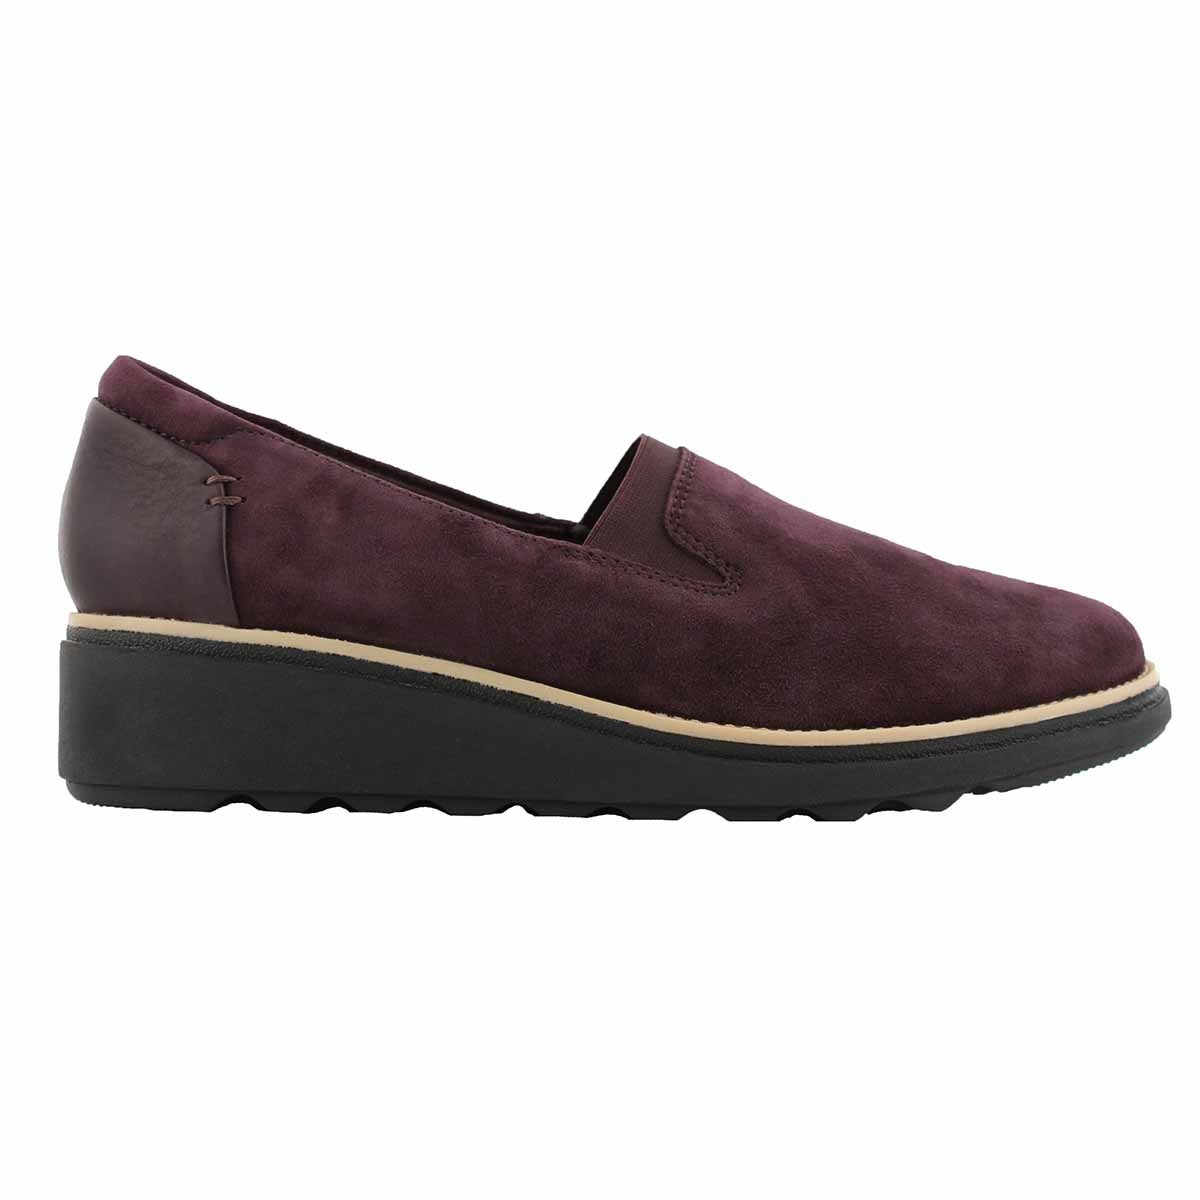 Lds Sharon Dolly aubergine casual loafer